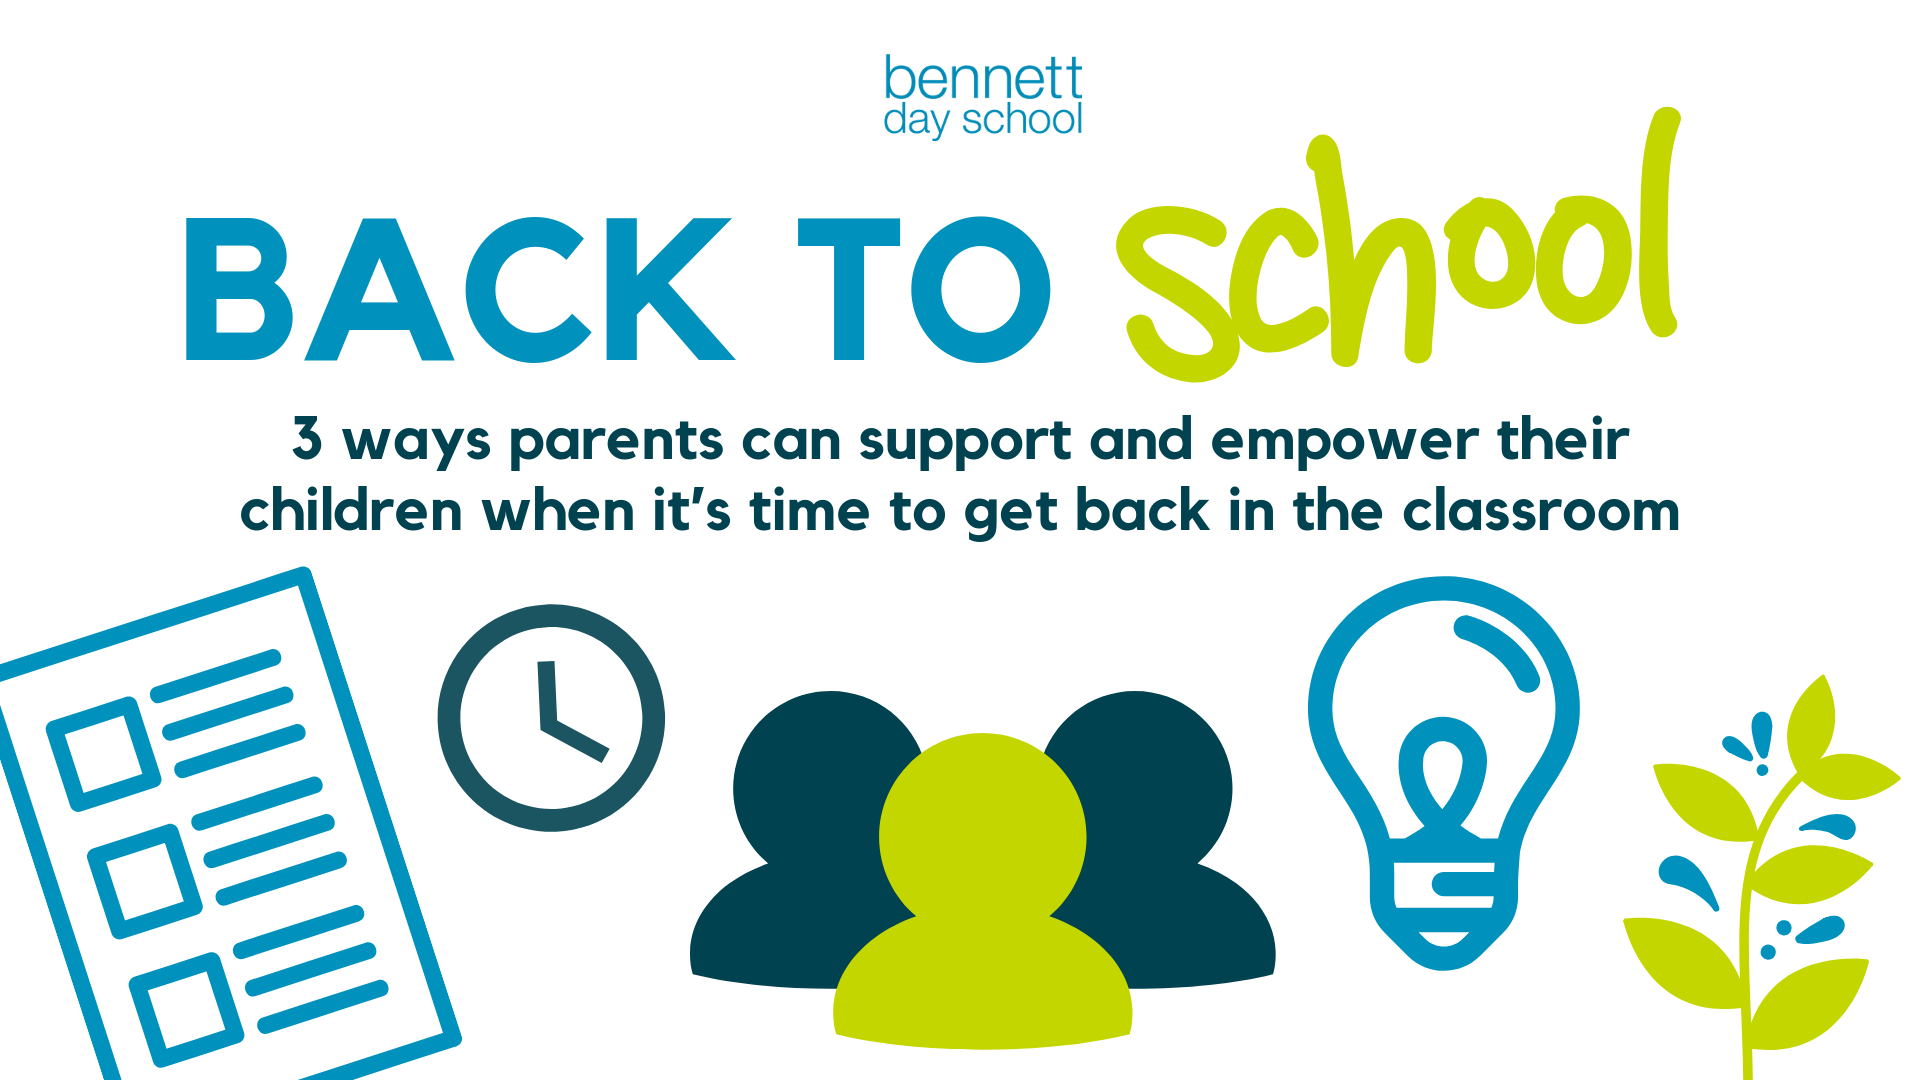 Back to School: 3 Ways Parents Can Support and Empower Their Children